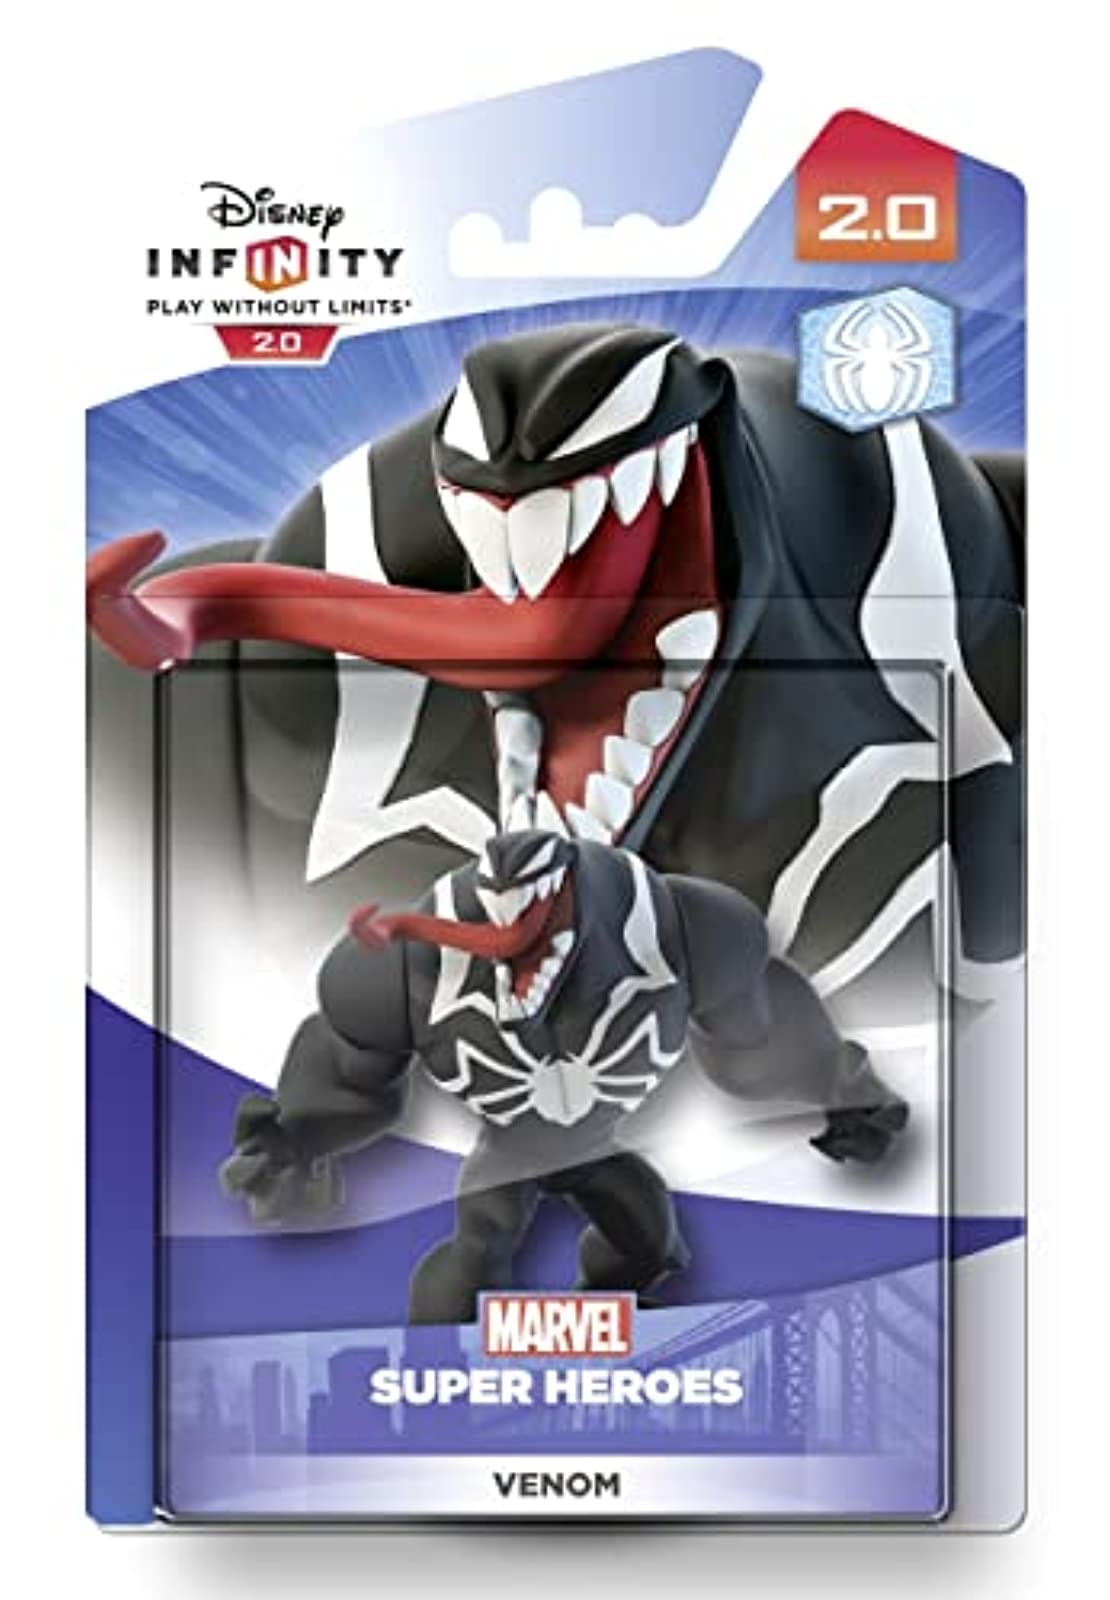 Disney Infinity 2.0 Character Venom View One Of The / Xbox PS4 / PS3 / Nintendo